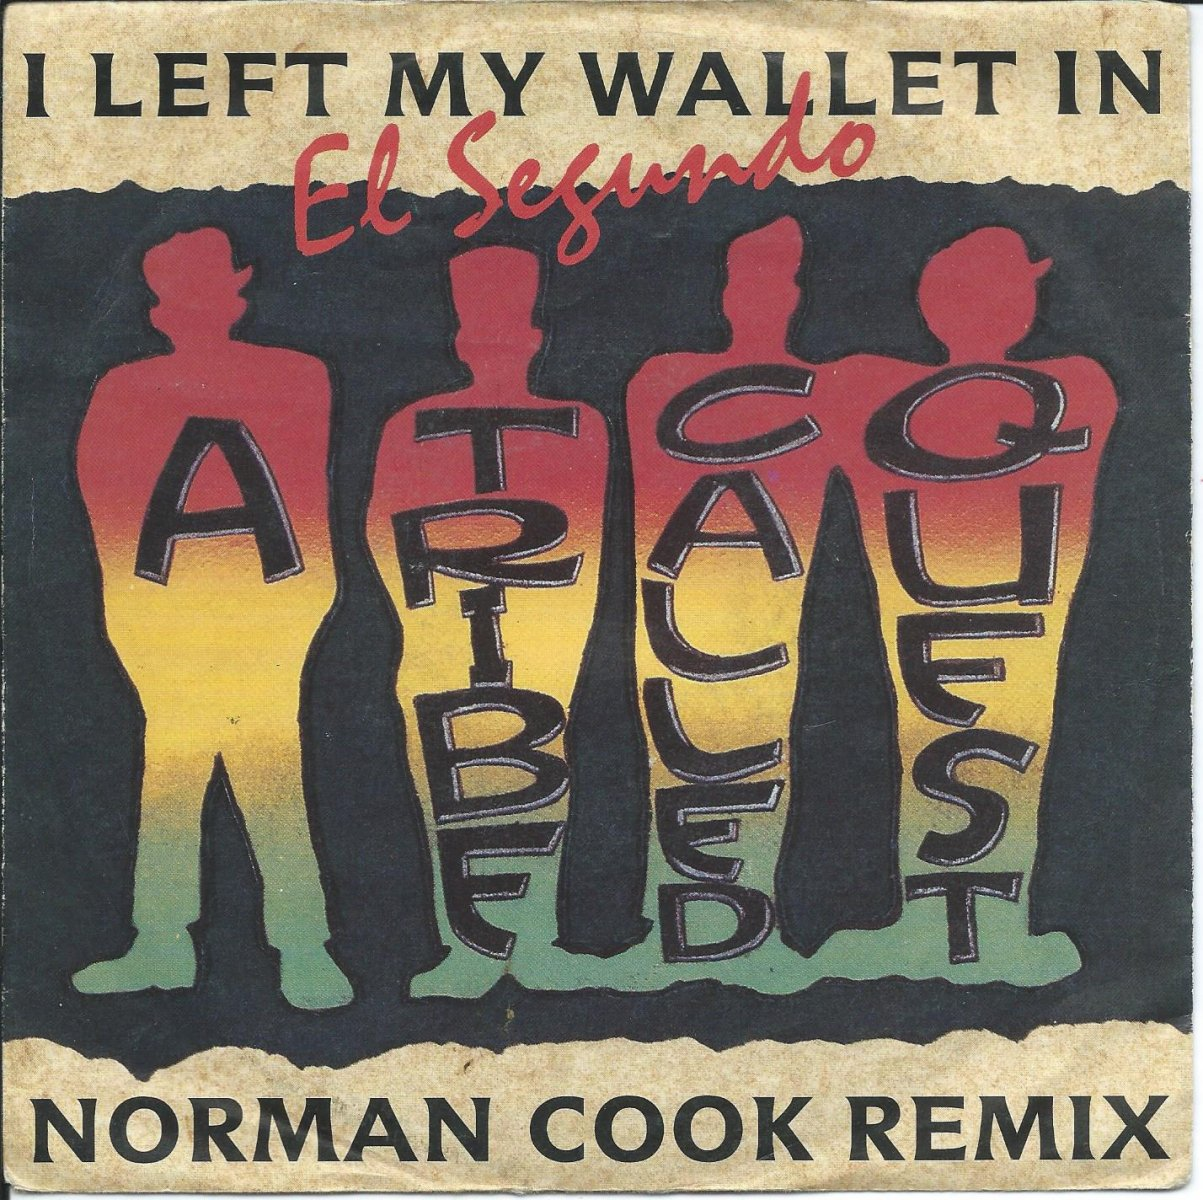 A TRIBE CALLED QUEST ‎/ I LEFT MY WALLET IN EL SEGUNDO (NORMAN COOK REMIX) (7